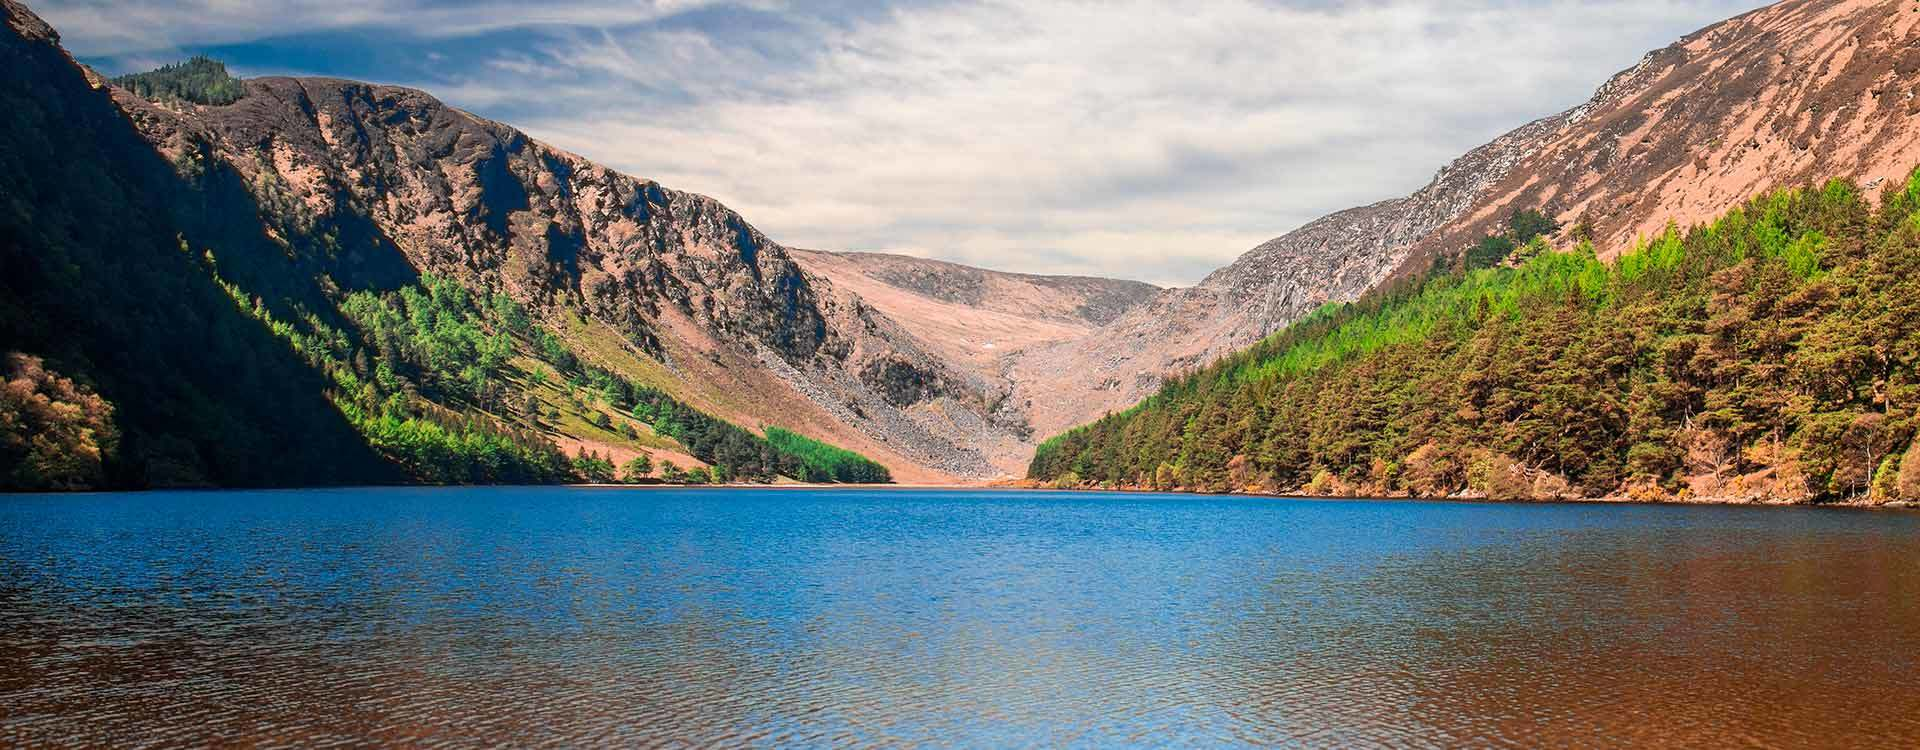 Private Glendalough & Kilkenny Day Tour from Dublin